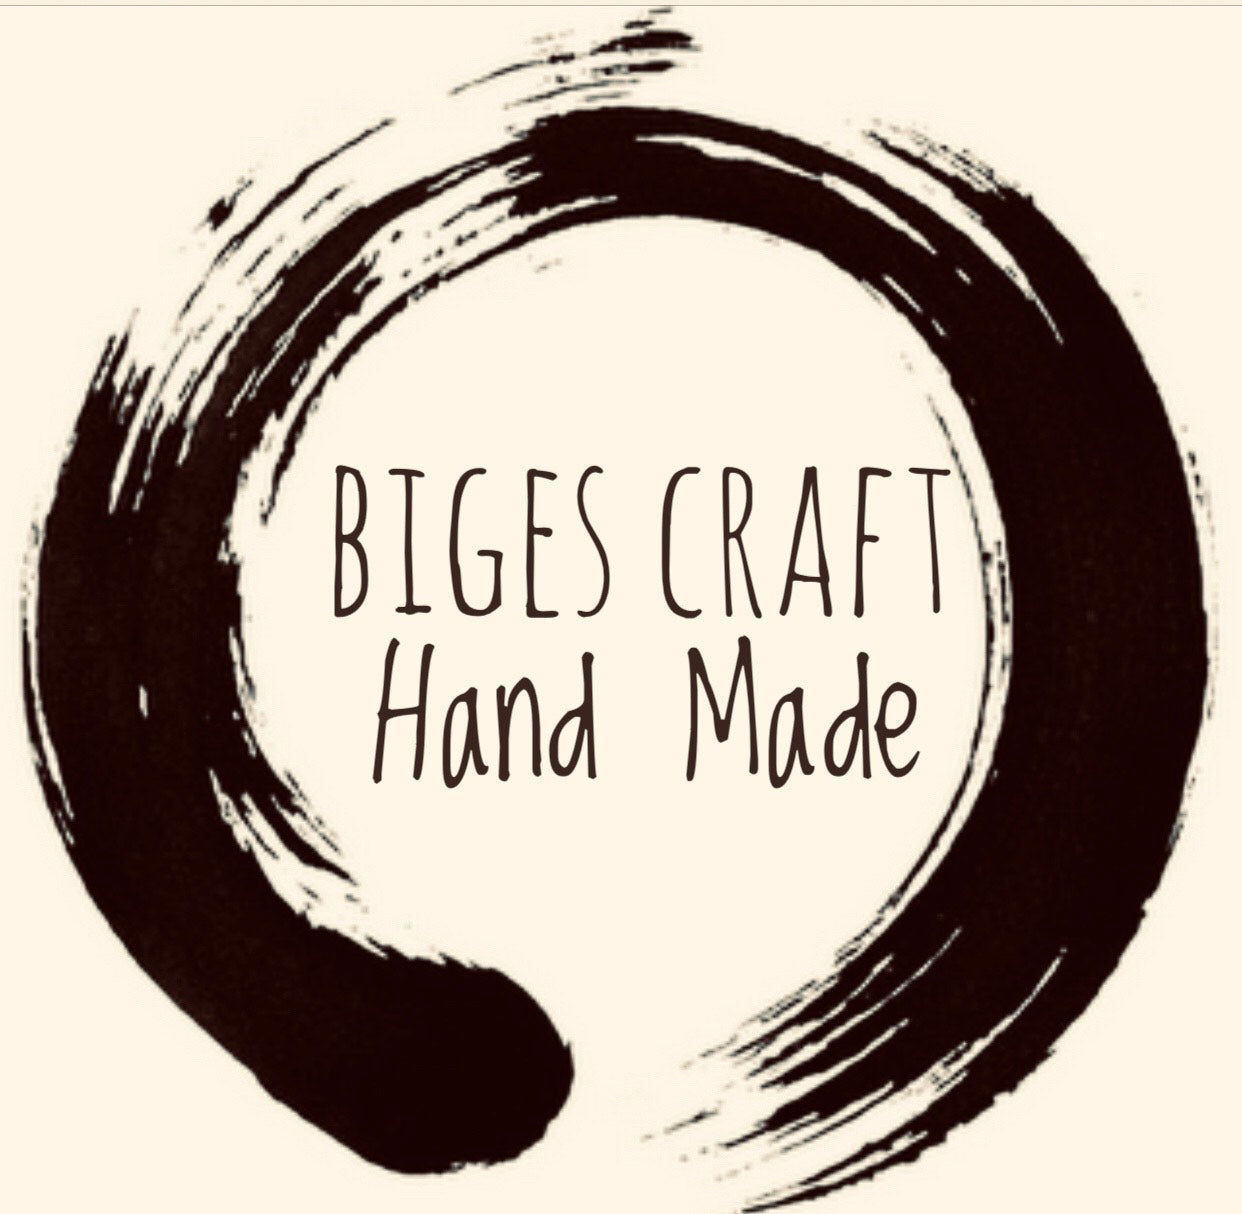 Biges Craft